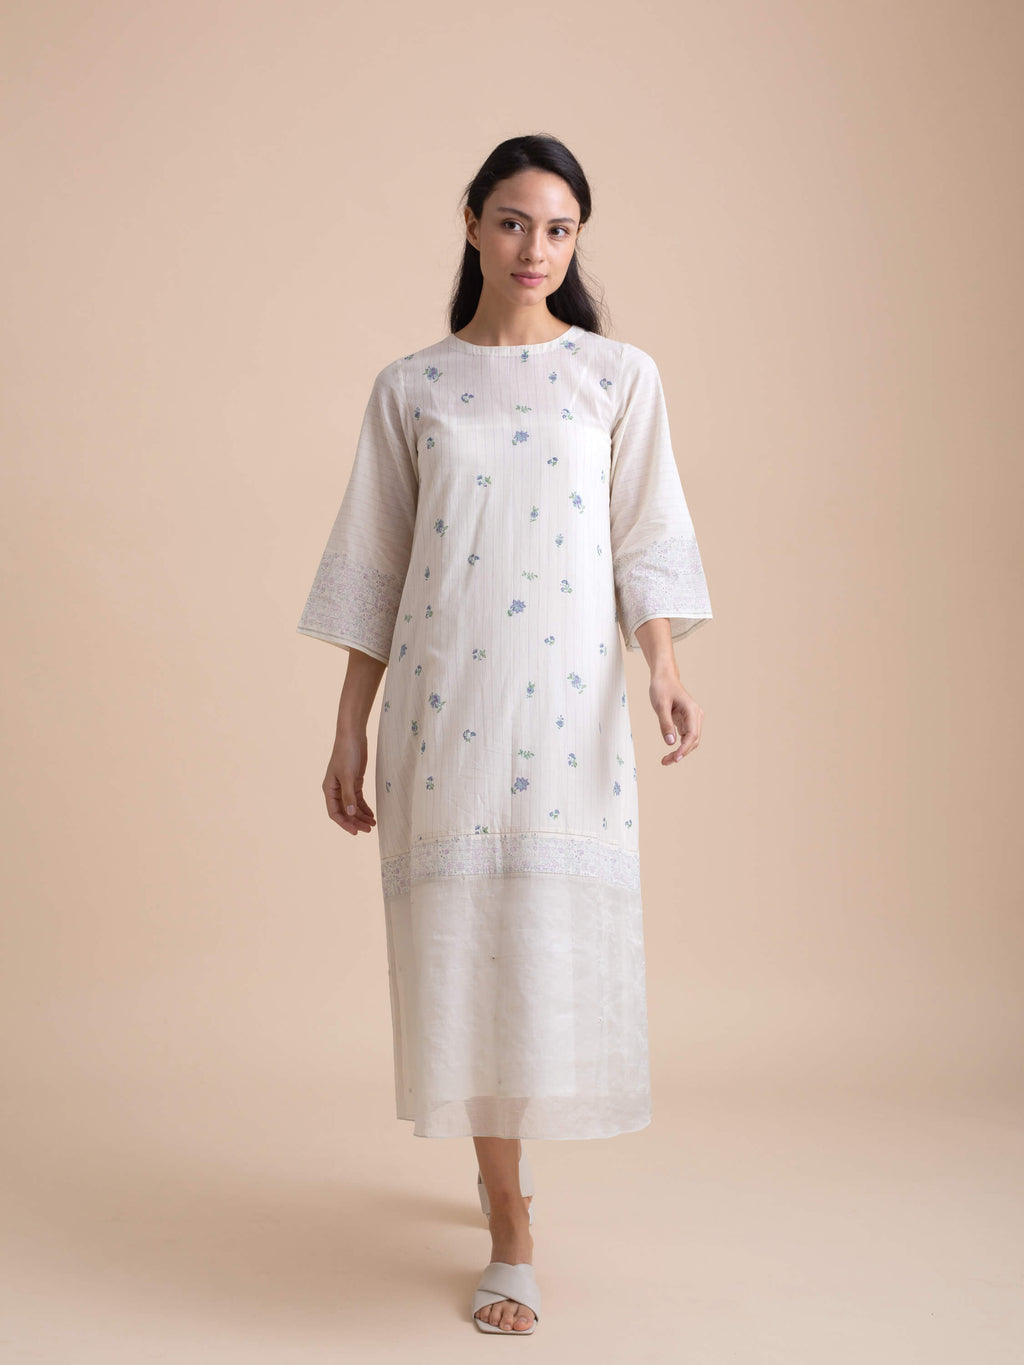 April Rain Dress - BunaStudio